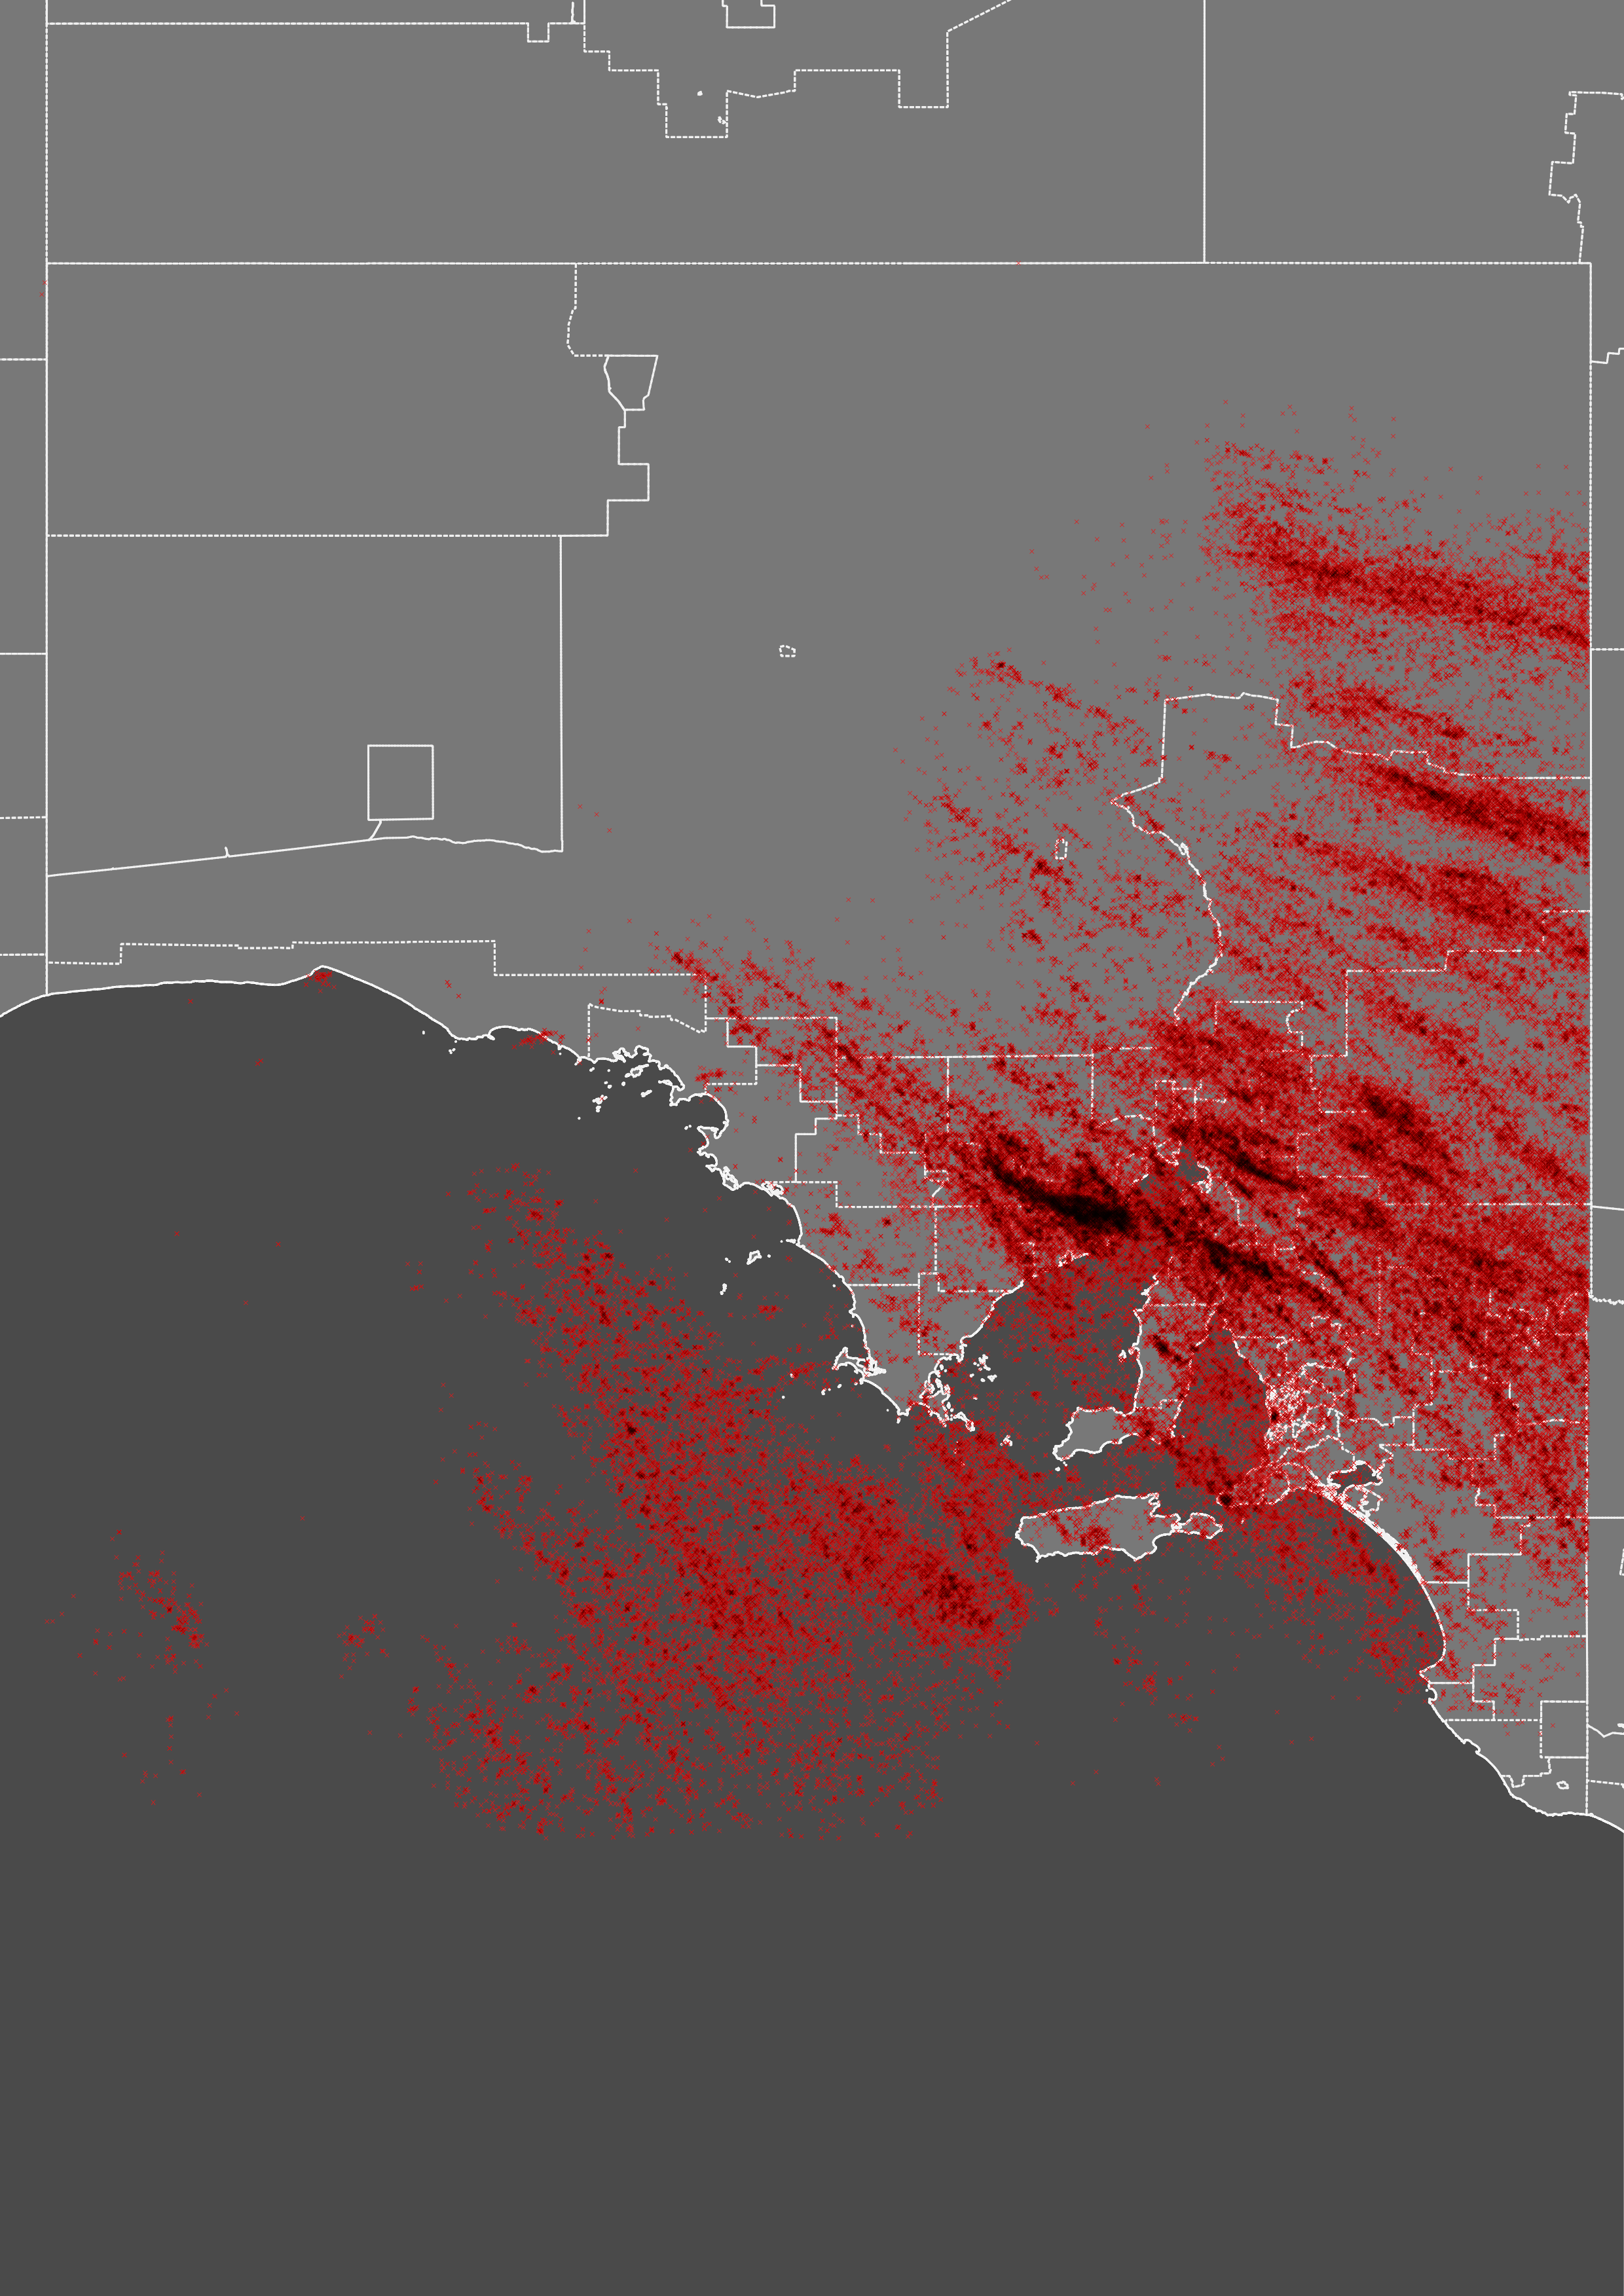 Observed lightning strikes (red) around Port Adelaide during yesterday's storm.